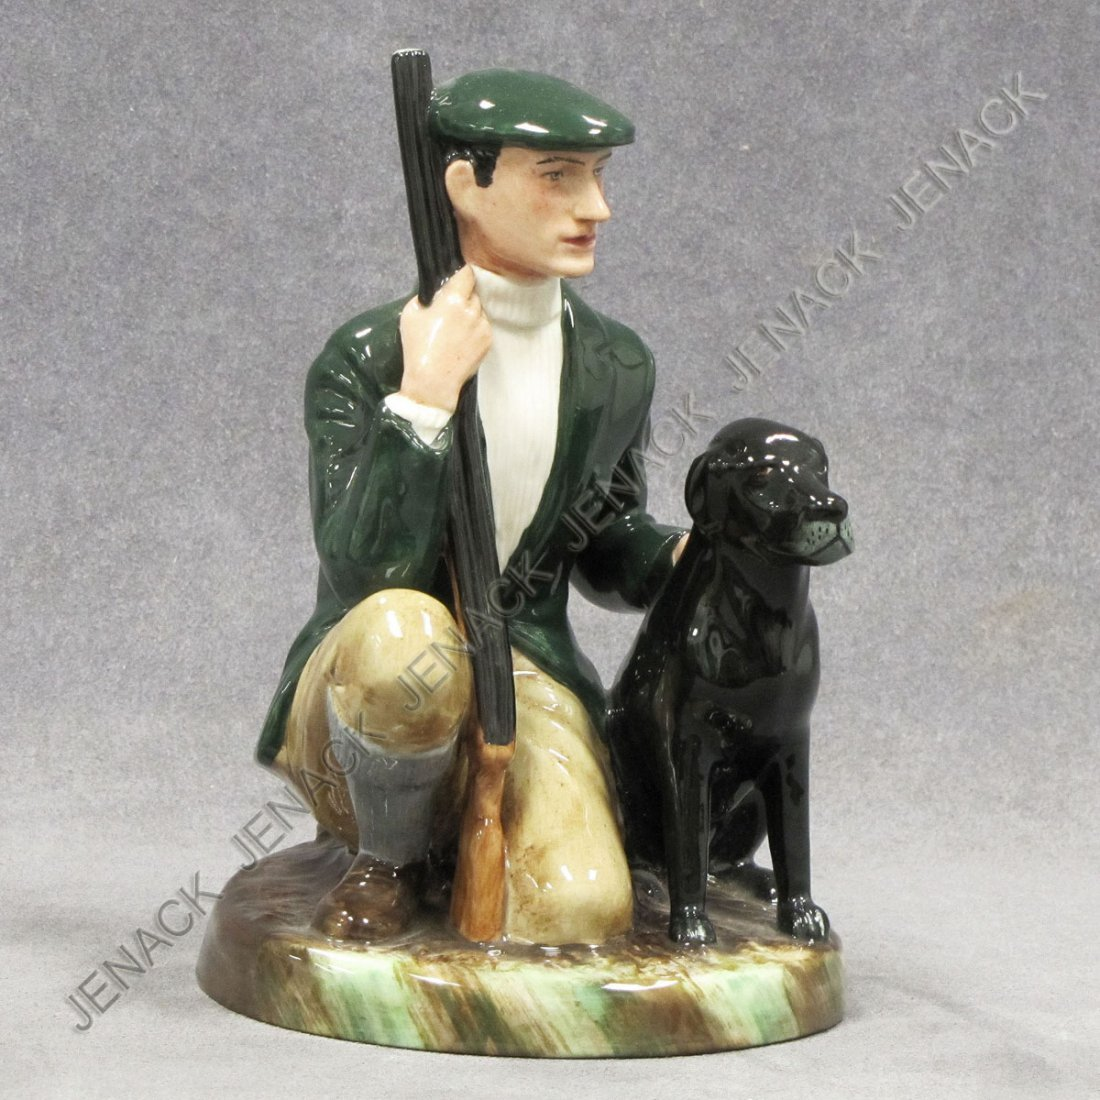 10: ROYAL DOULTON PORCELAIN FIGURE, THE GAME KEEPER